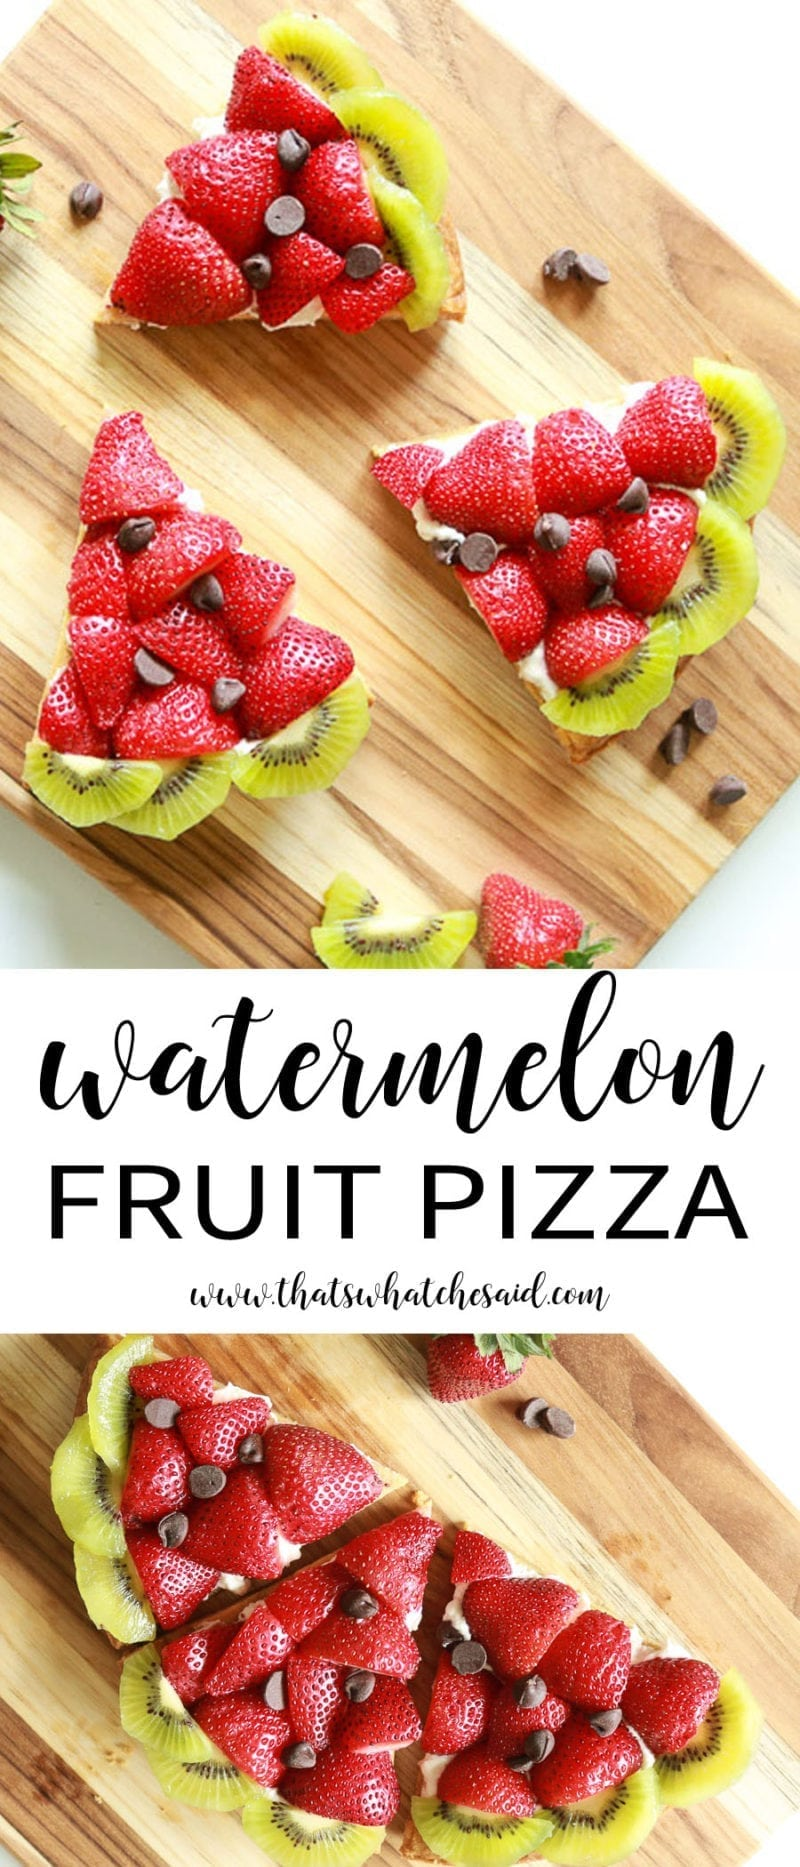 Easy to make Watermelon Fruit Pizza!